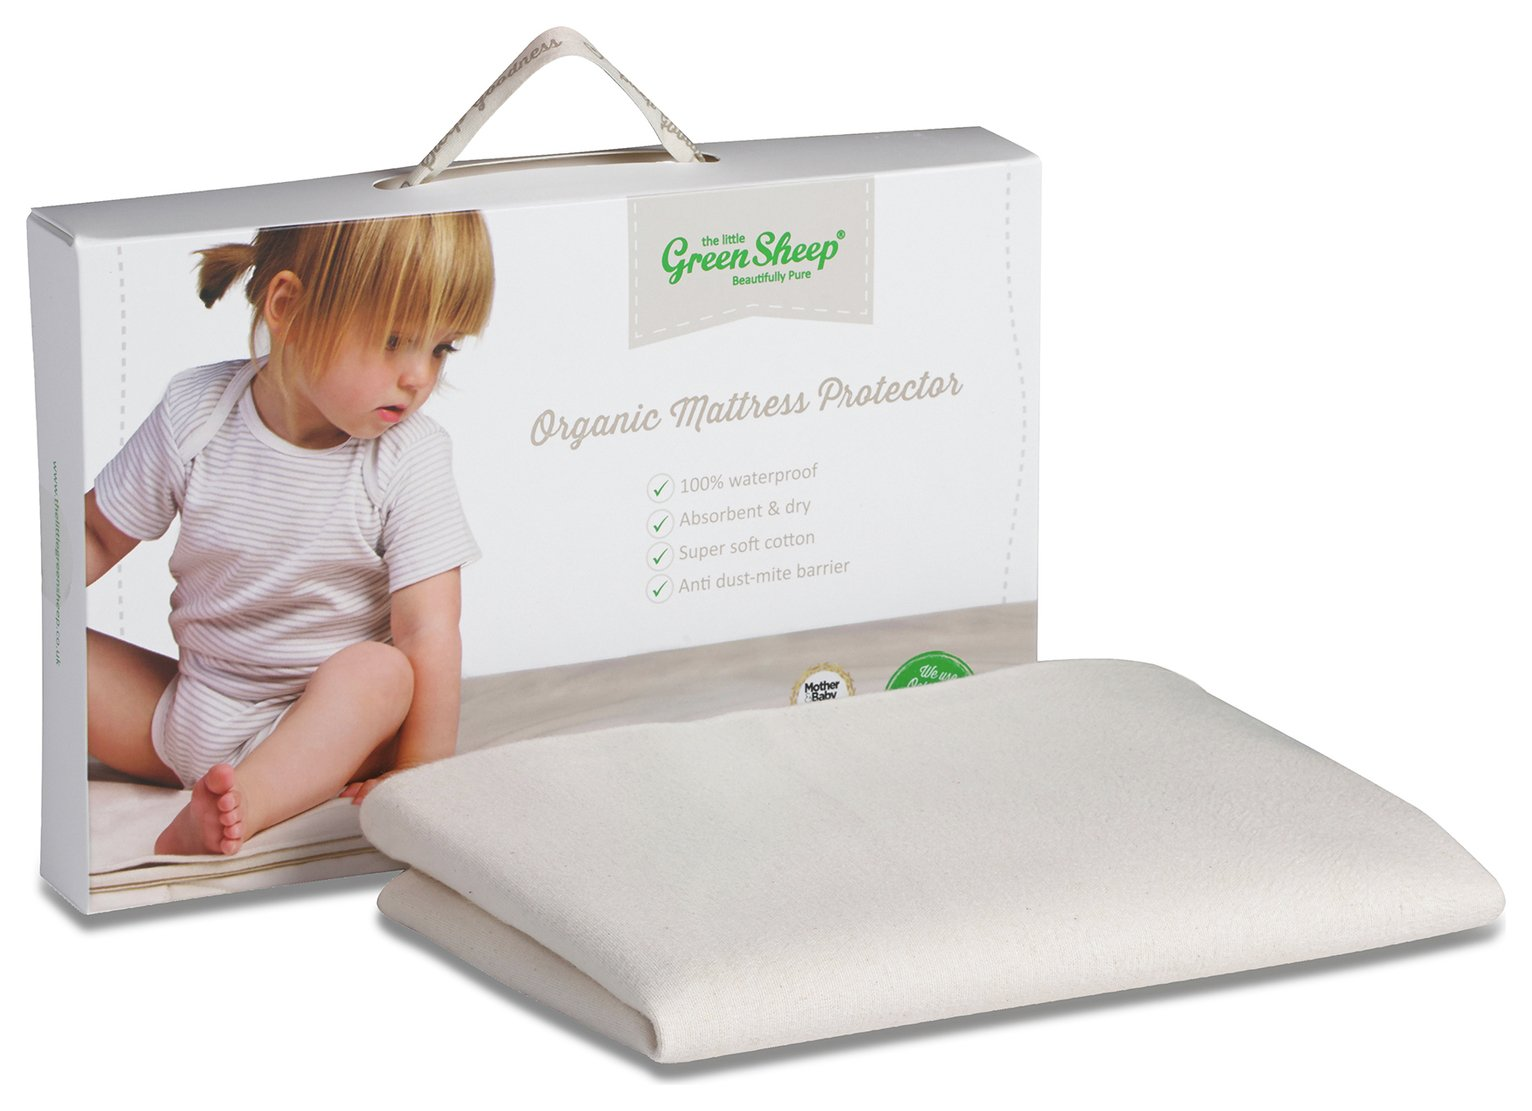 The Little Green Sheep Mattress Protector